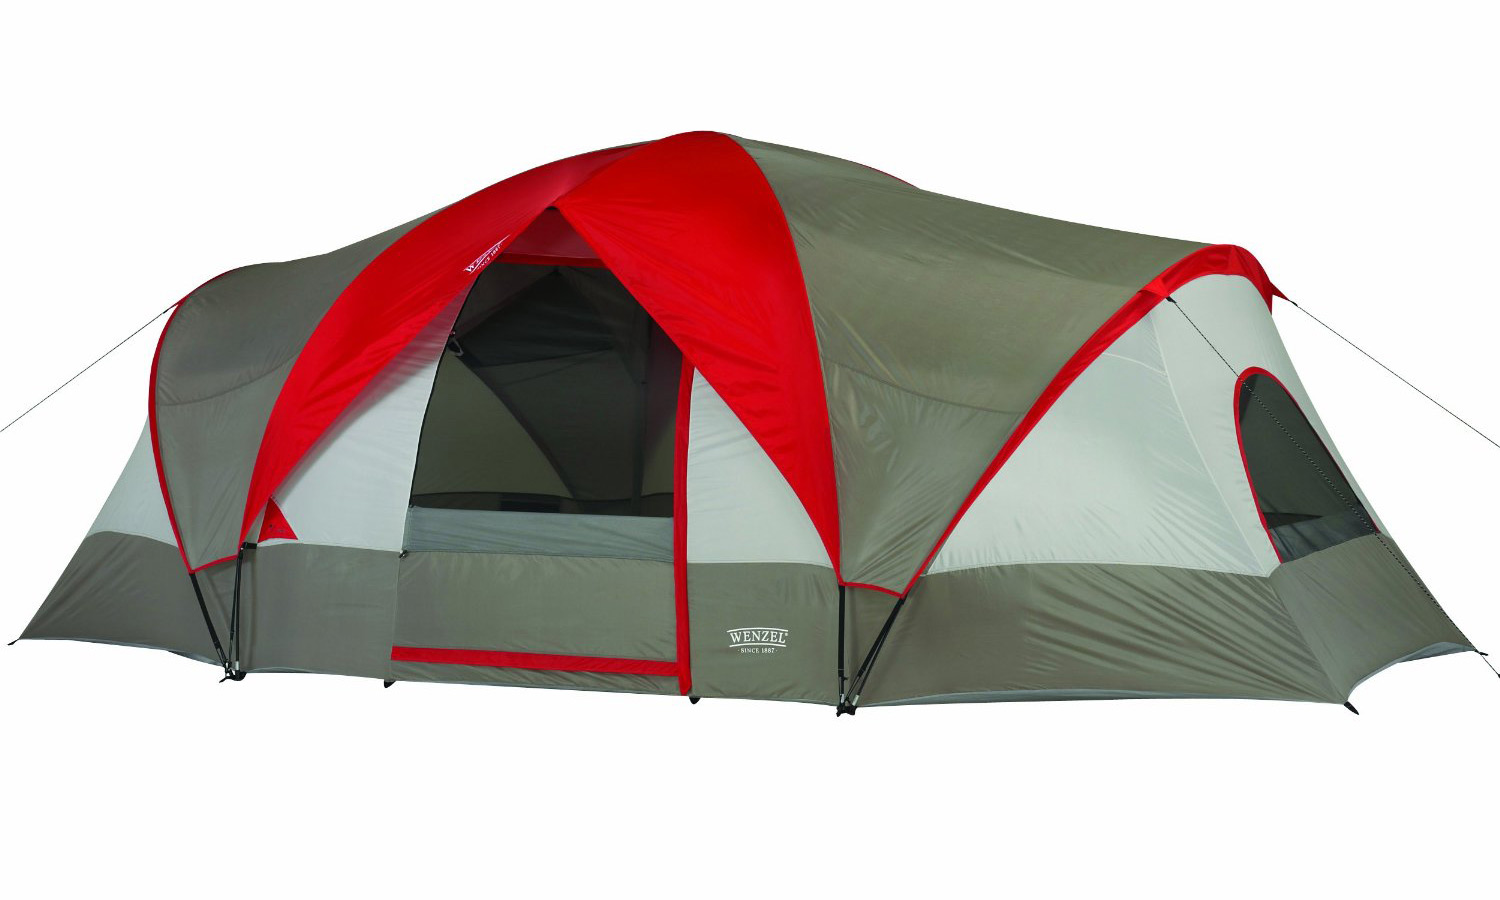 sc 1 st  Tent Buying Guide : rugged tents - memphite.com